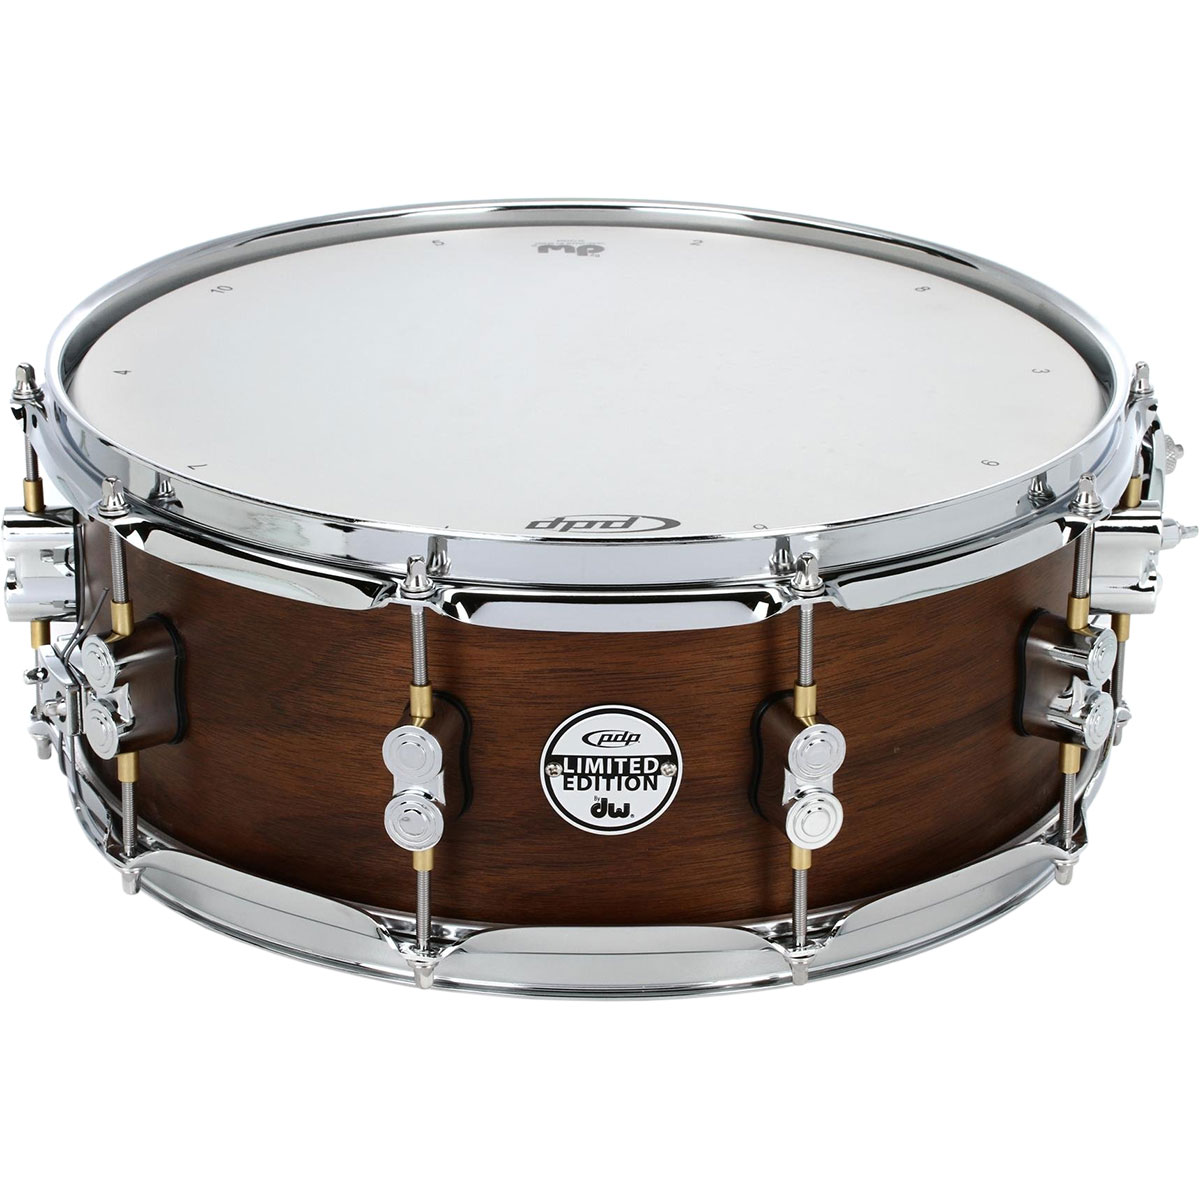 "PDP 5.5"" x 14"" Limited Edition Series 20-Ply Maple/Walnut Snare Drum in Natural Satin"